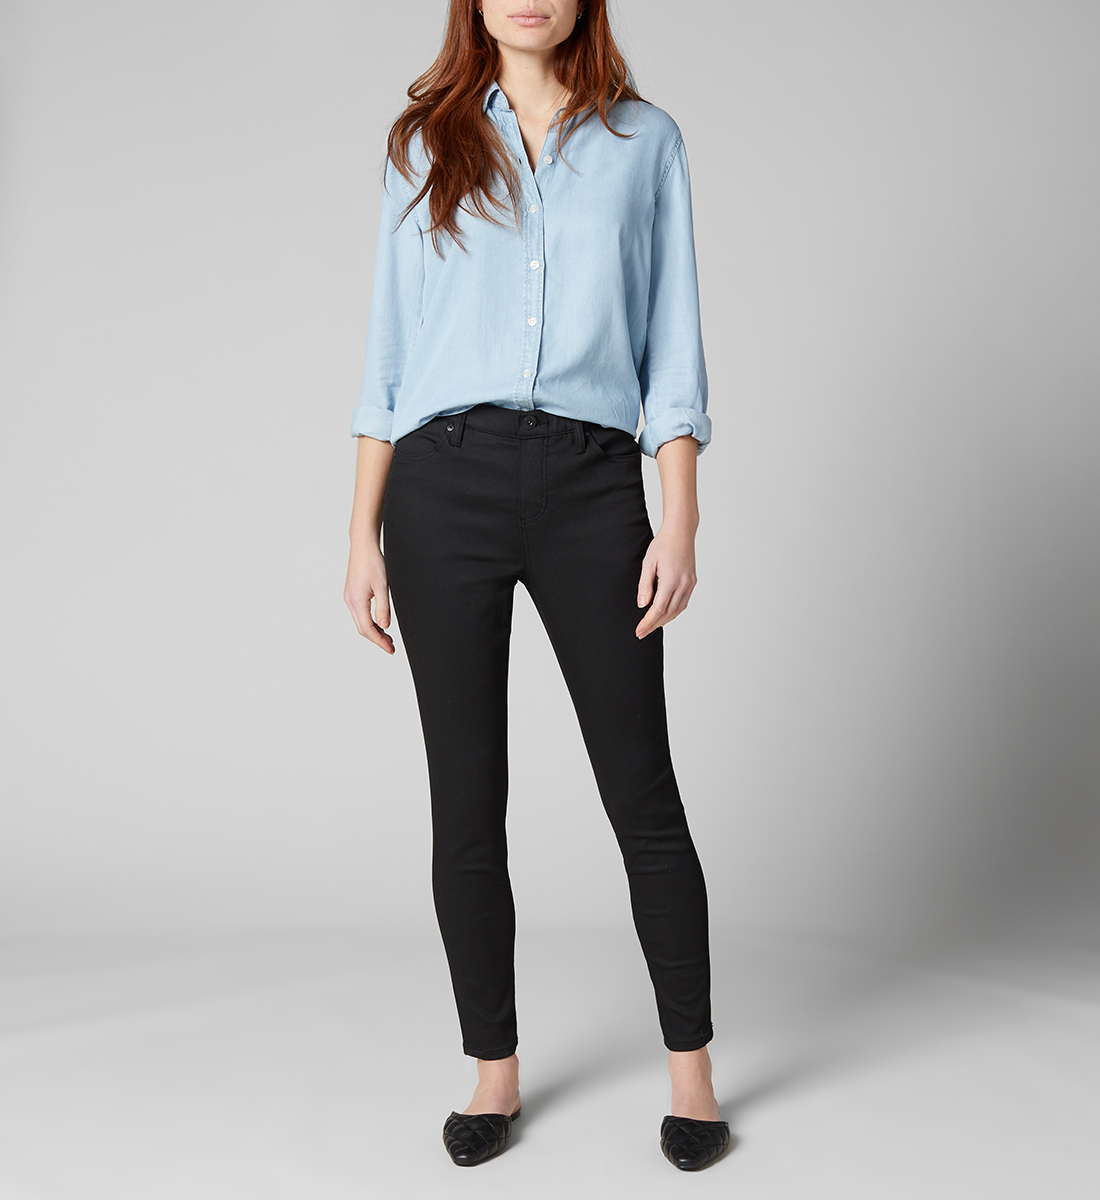 Valentina High Rise Skinny Pull-On Jeans - Sustainable Fabric, , hi-res